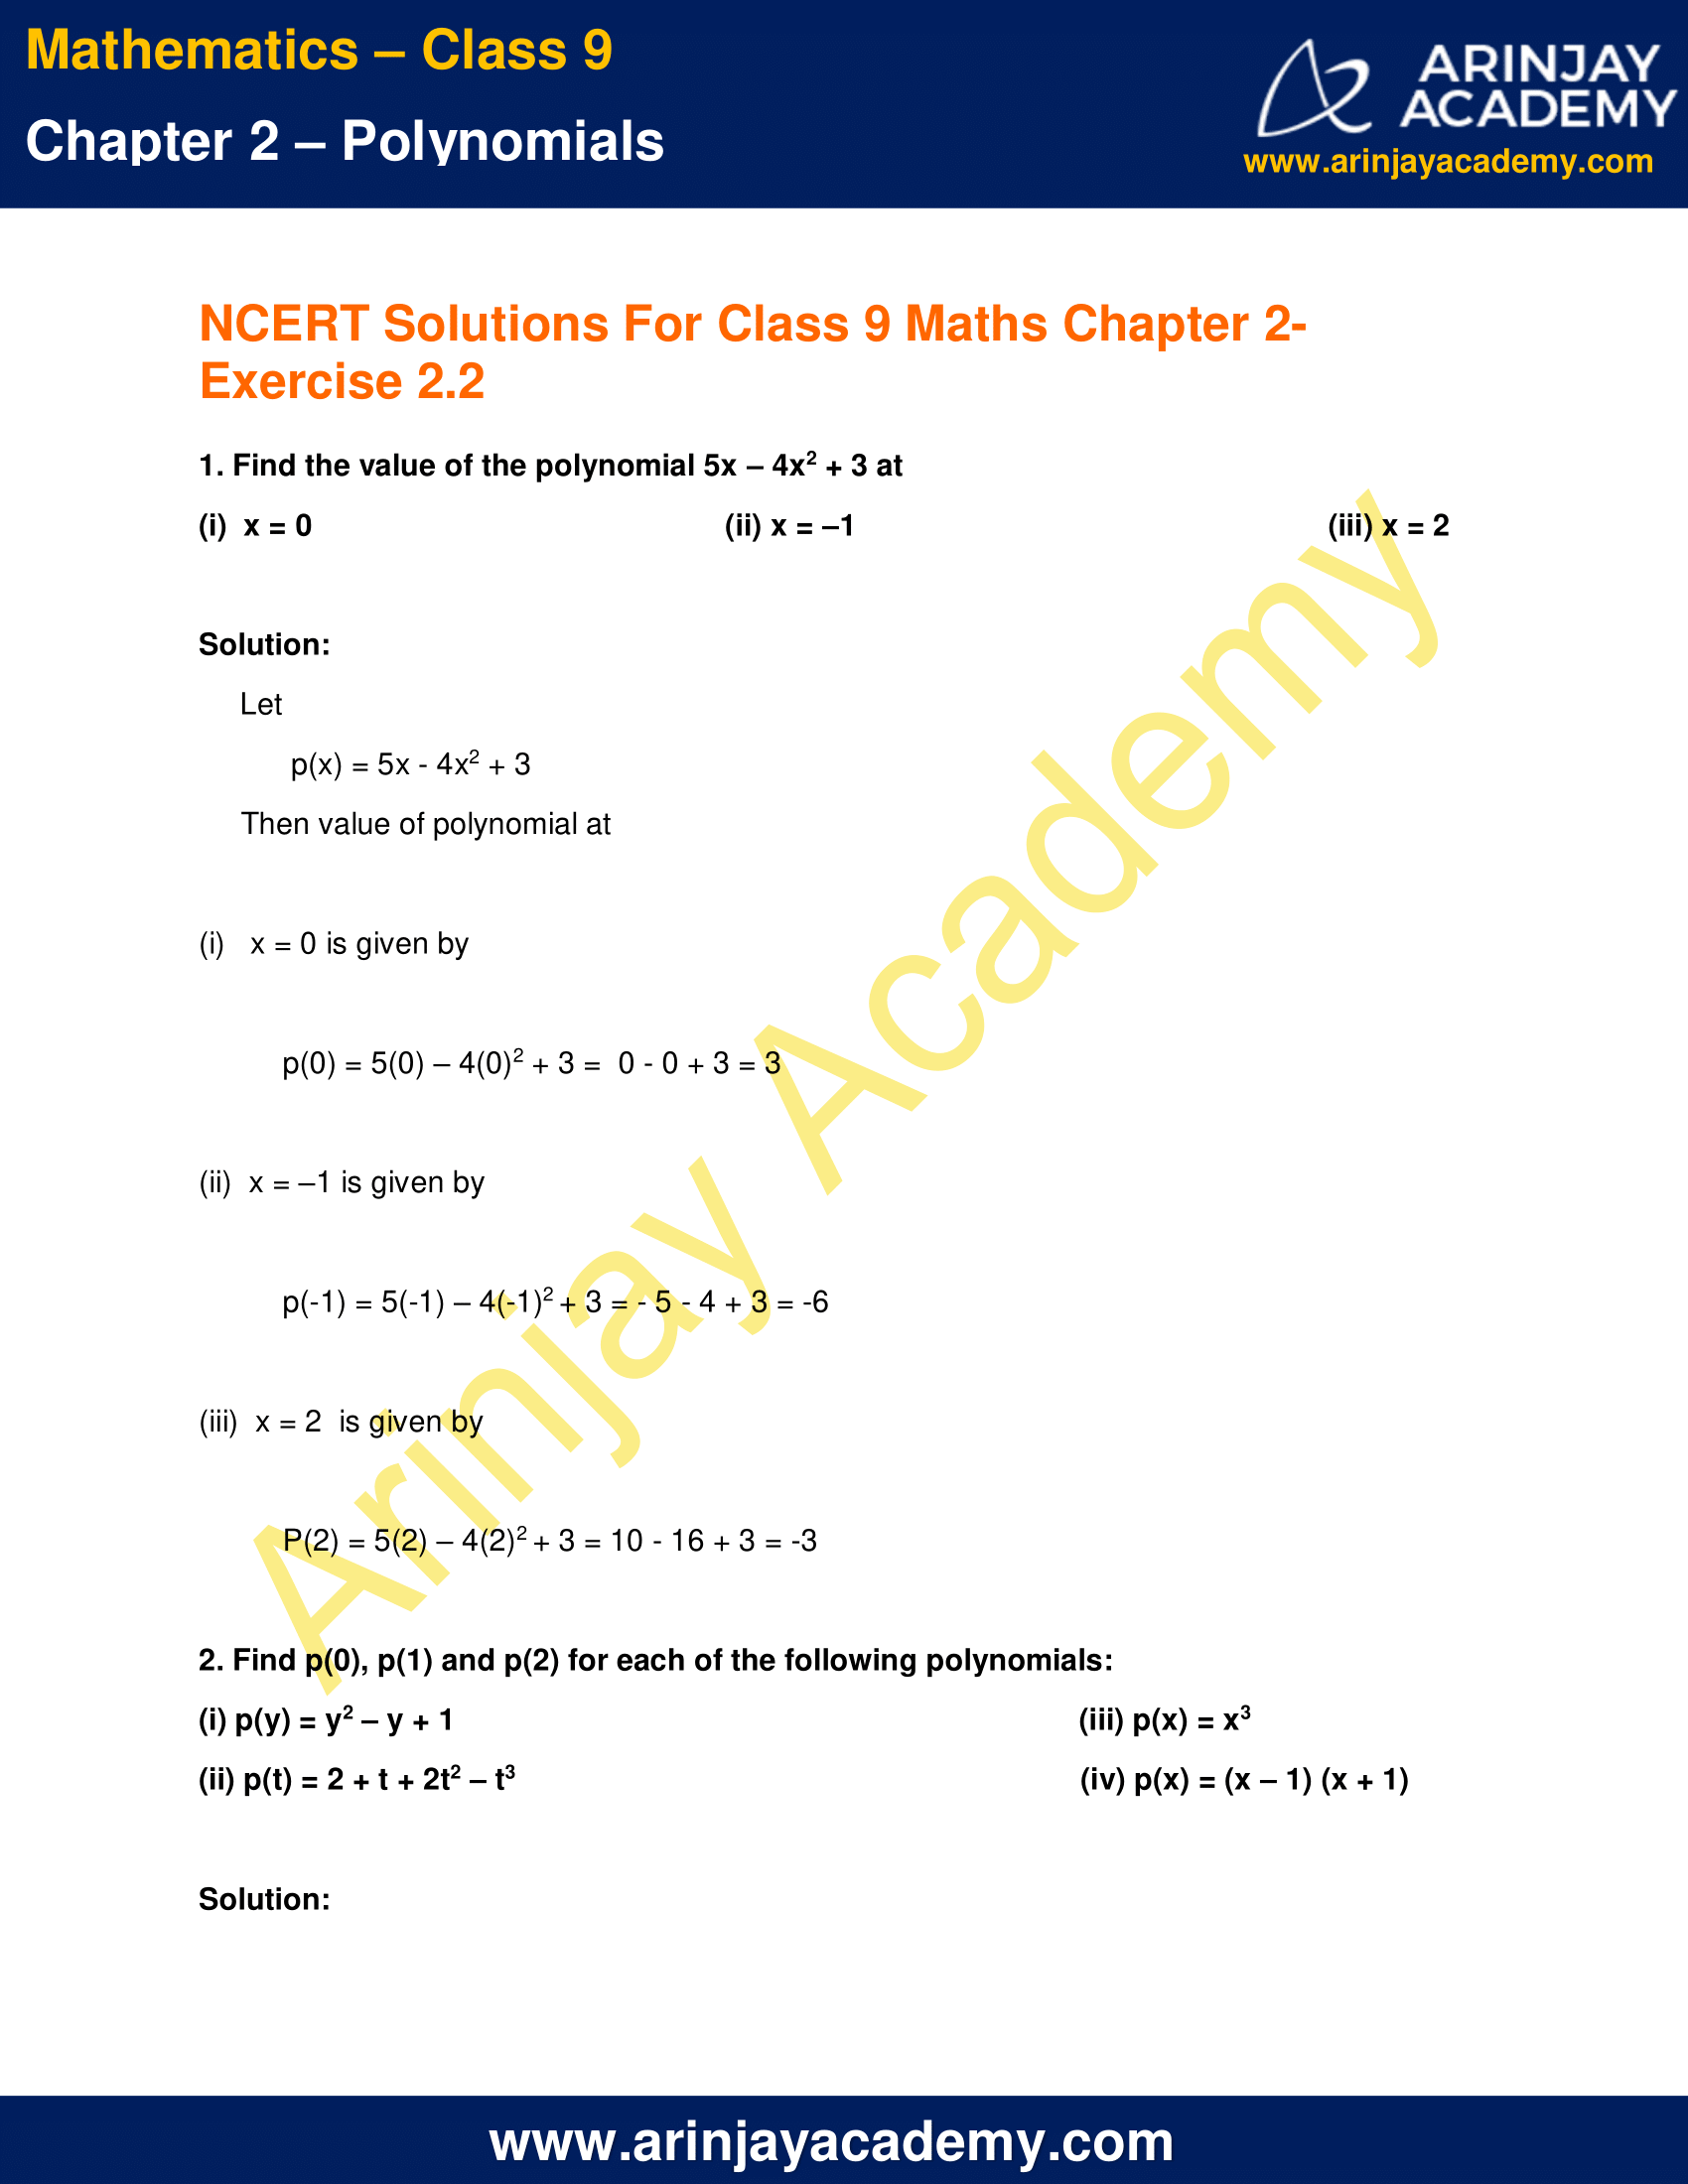 NCERT Solutions for Class 9 Maths Chapter 2 Exercise 2.2 image 1